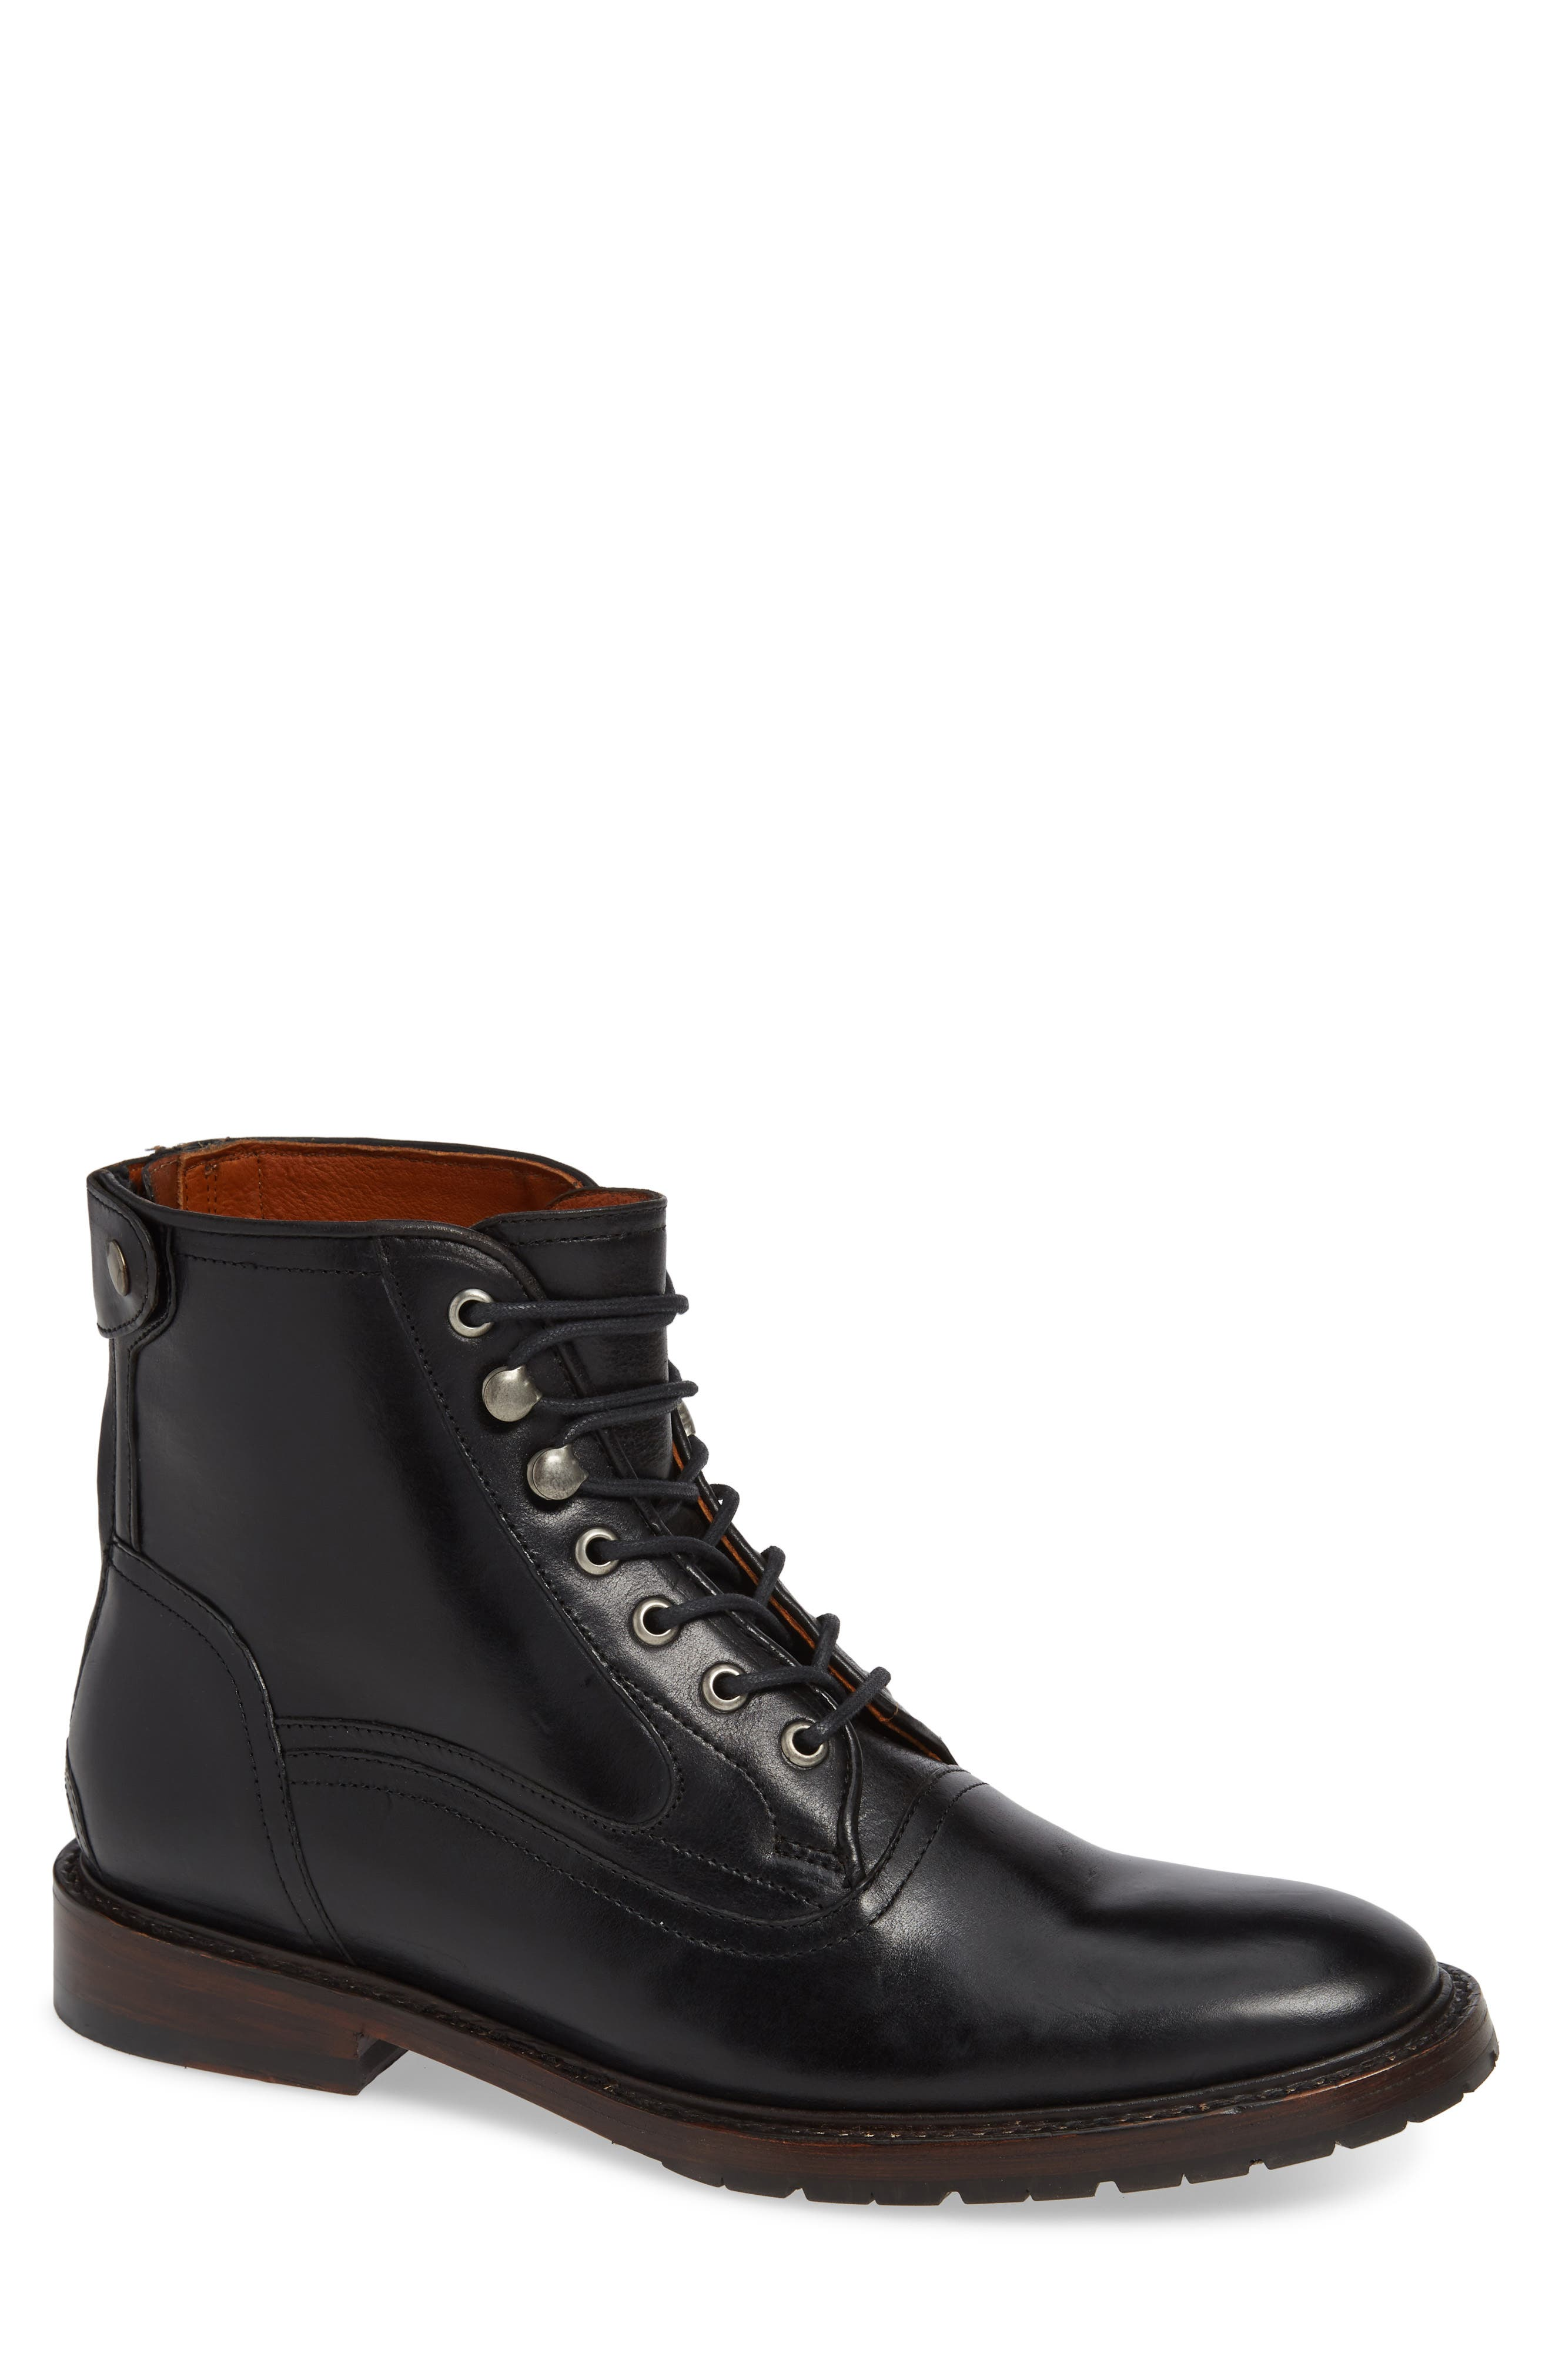 TWO24 by Ariat Fairfax Plain Toe Boot, Main, color, BLACK LEATHER